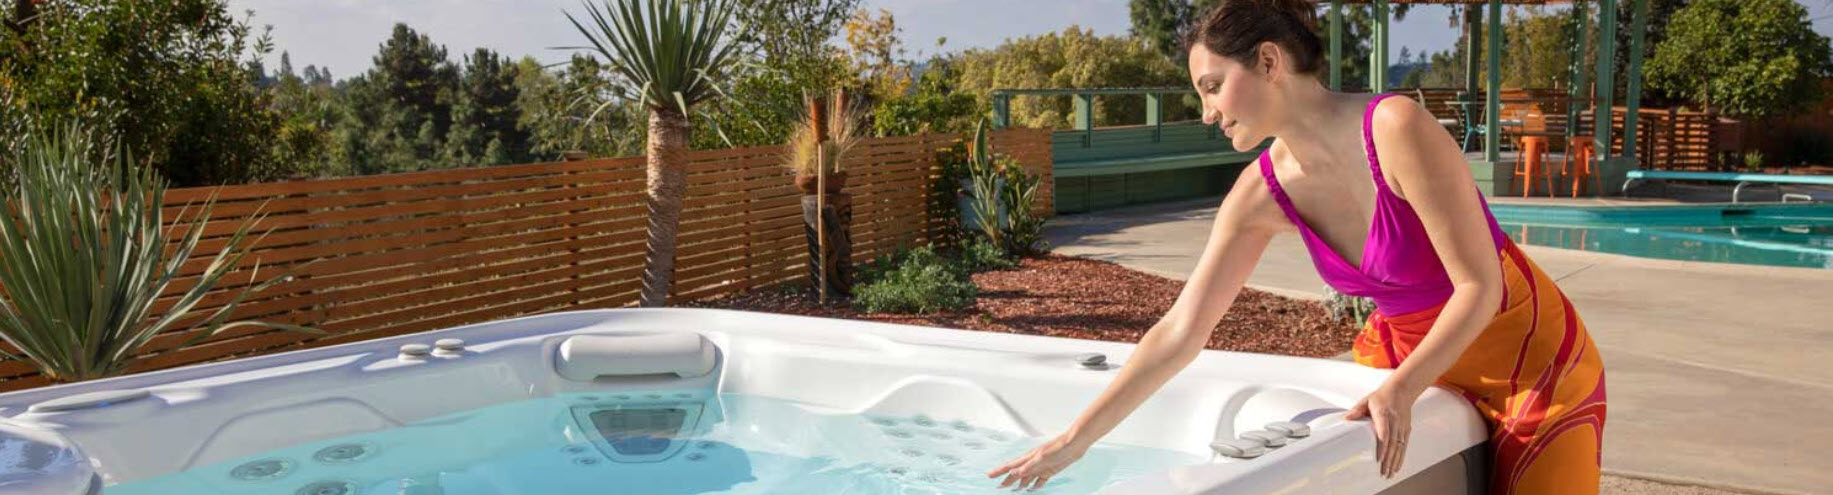 Decrease Stress Pain at Home with Hot Water Hydrotherapy, Hot Tub Dealer Ballwin